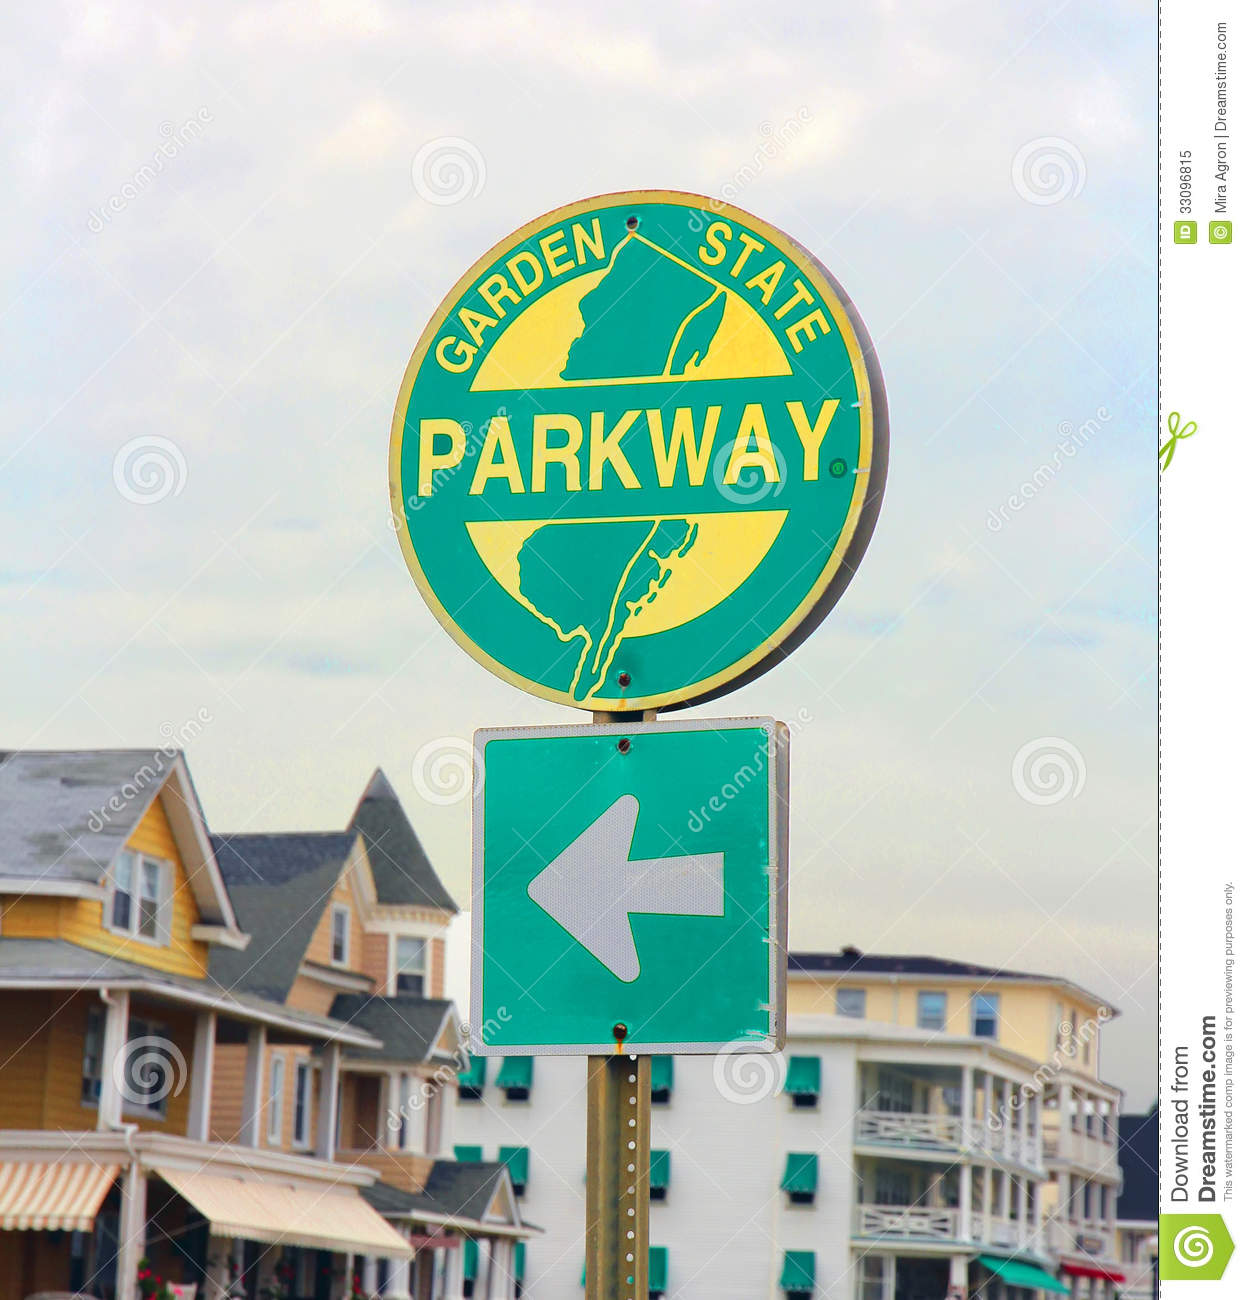 Nj Parkway Sign Royalty Free Stock Photo Image 33096815